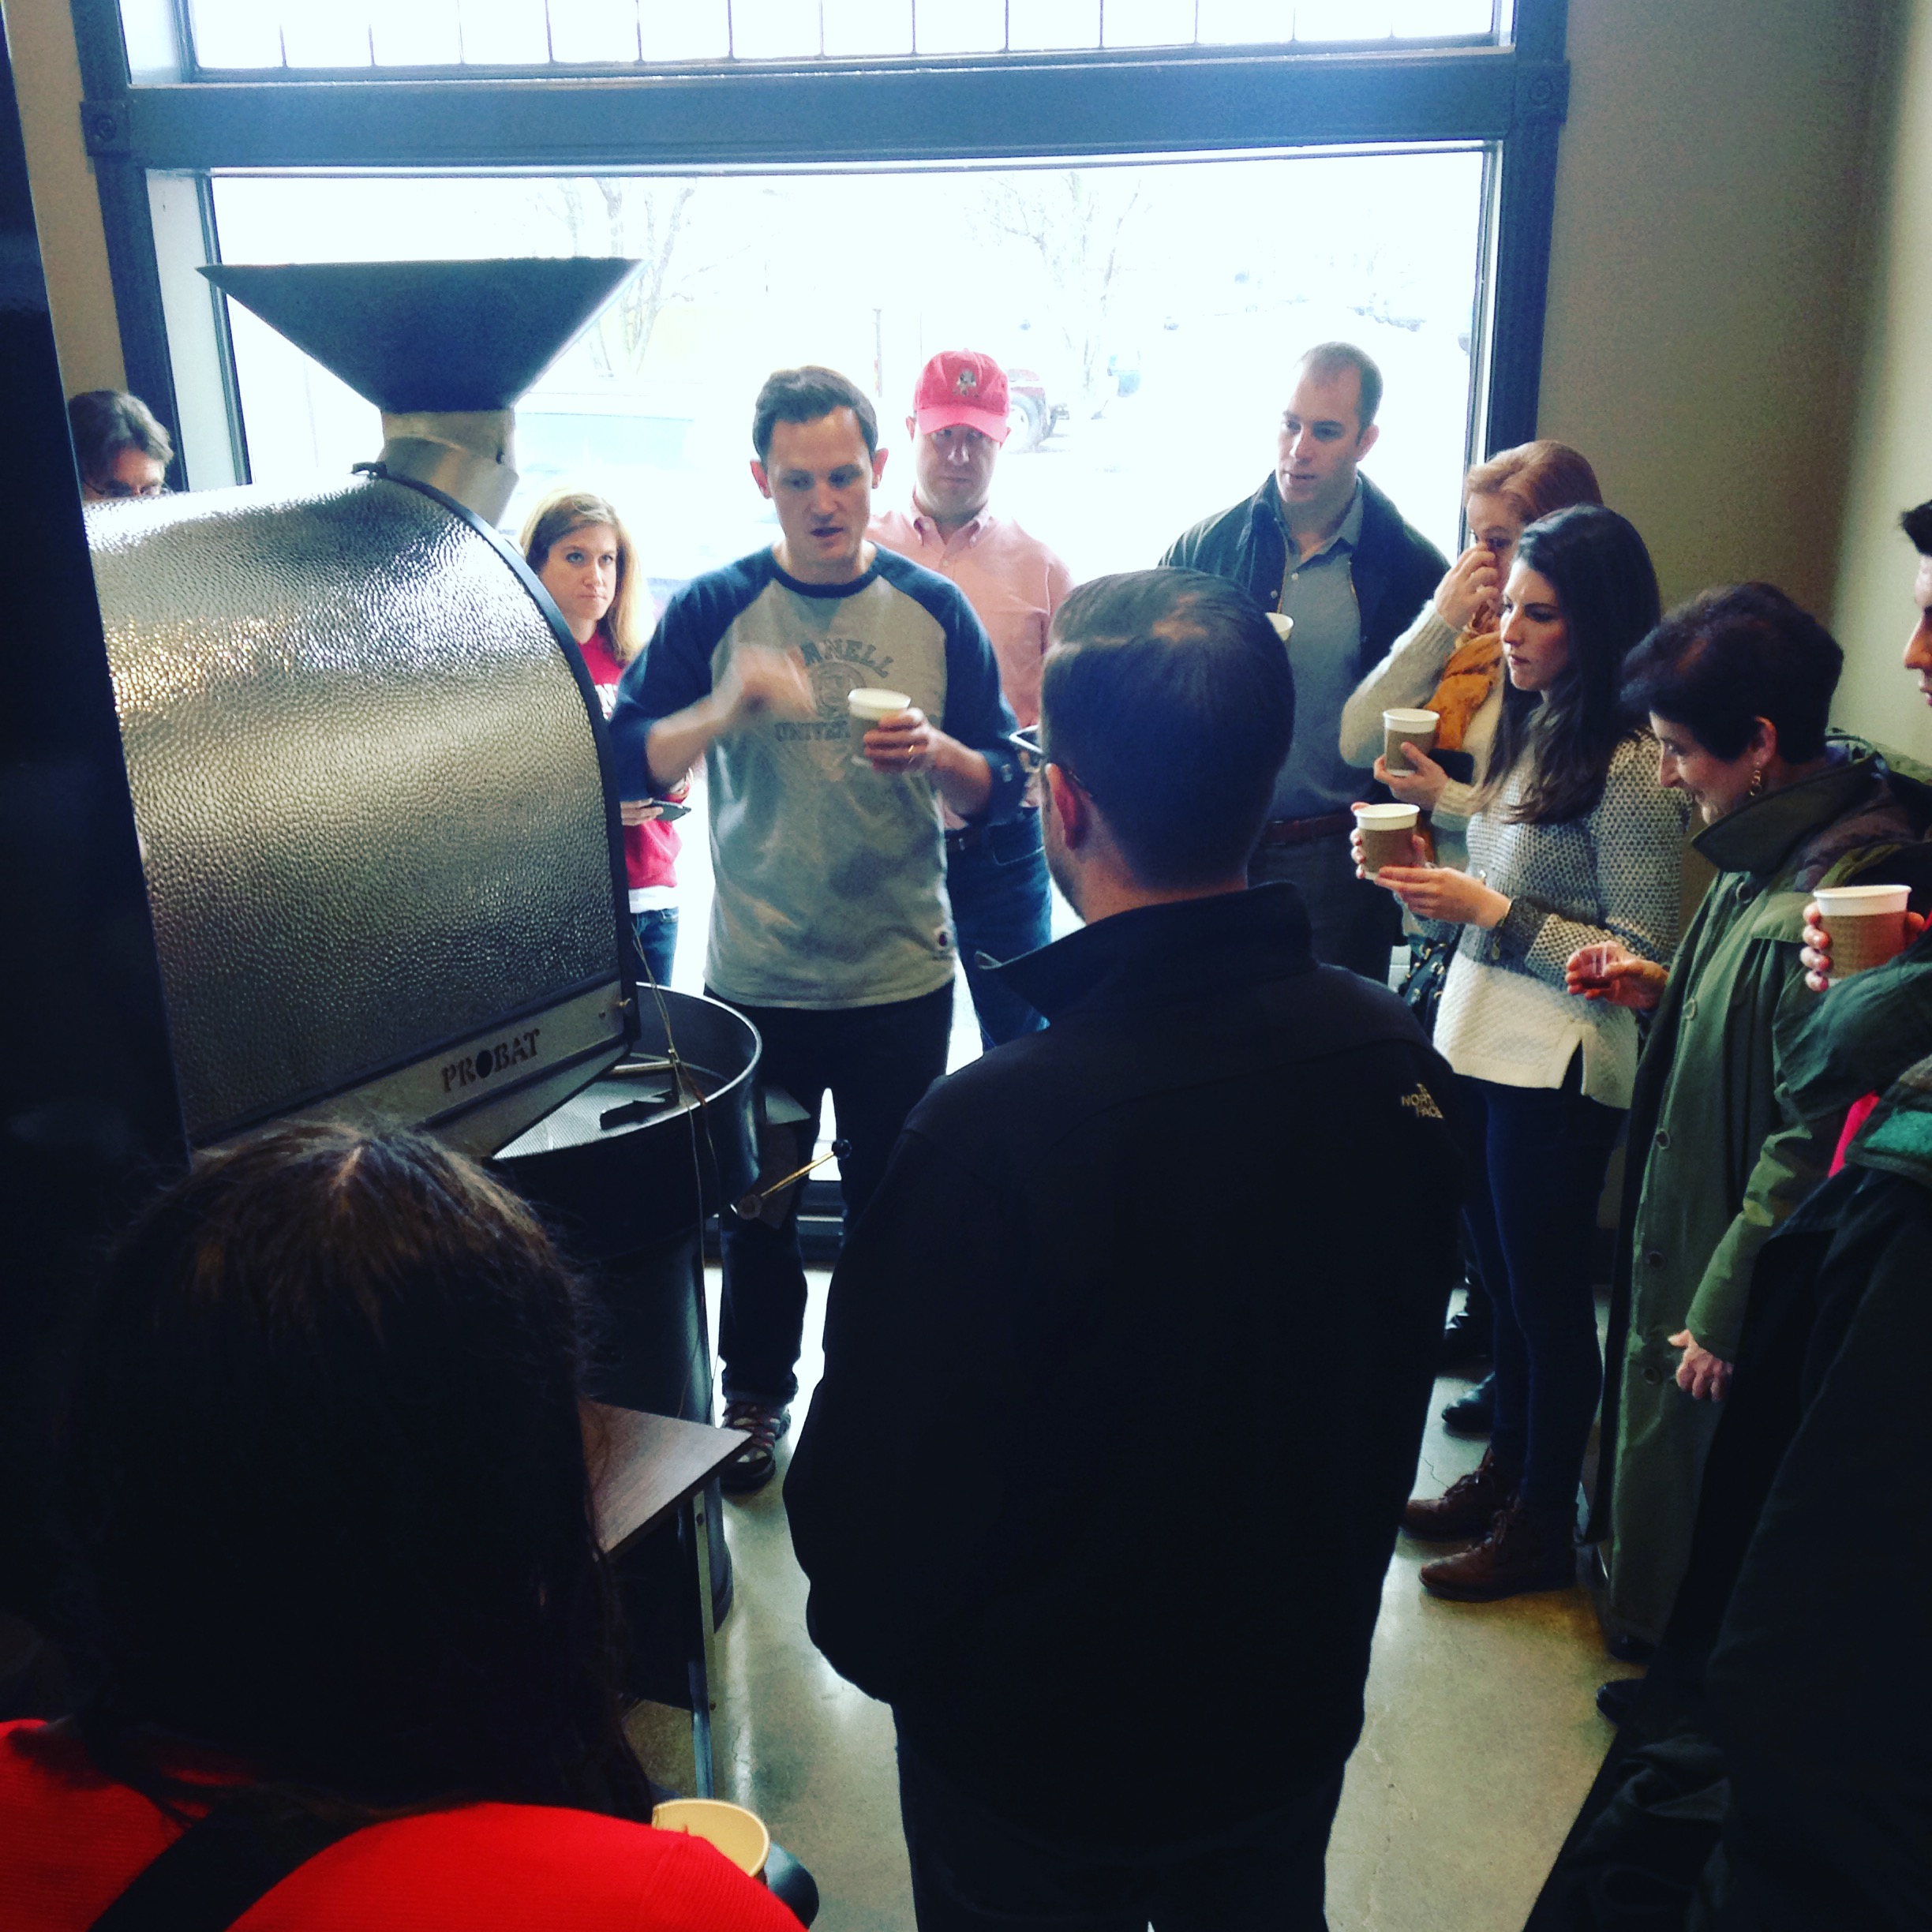 Steve and I hosted a coffee lecture for fellow Cornell Alumni.